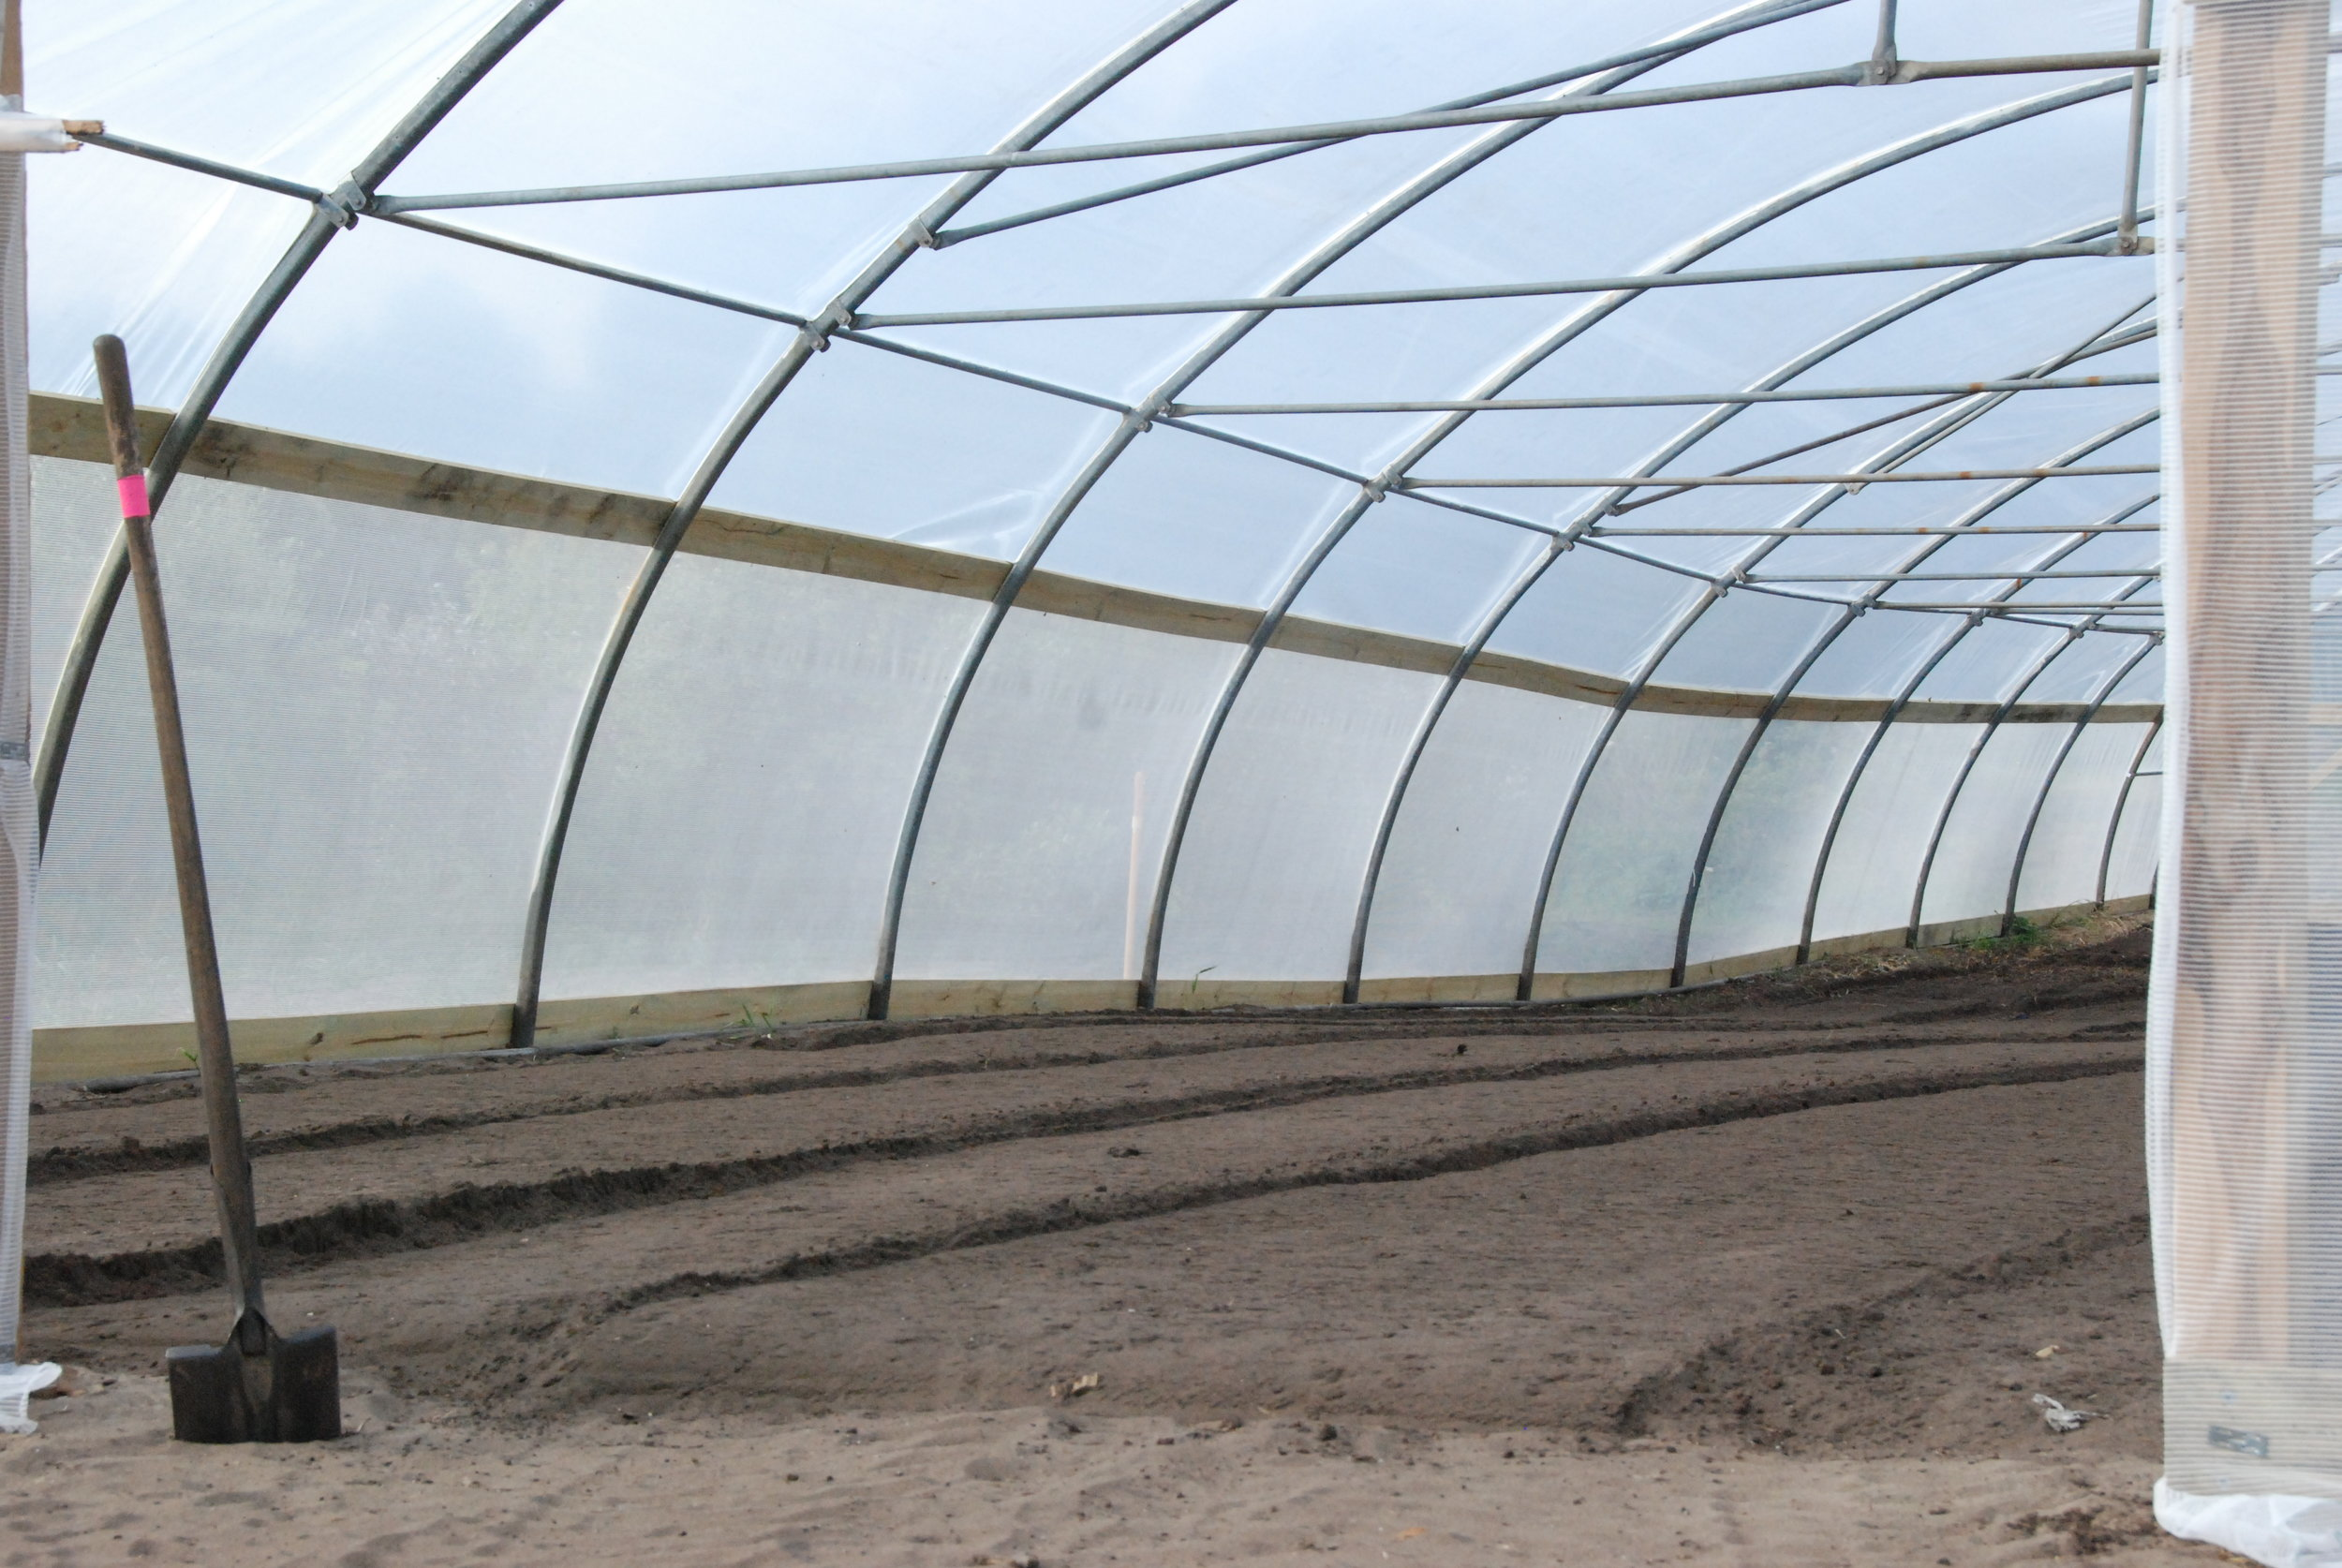 new (recycled) polytunnel almost completed and ready for planting this seasons eggplant, capsicums and chillies